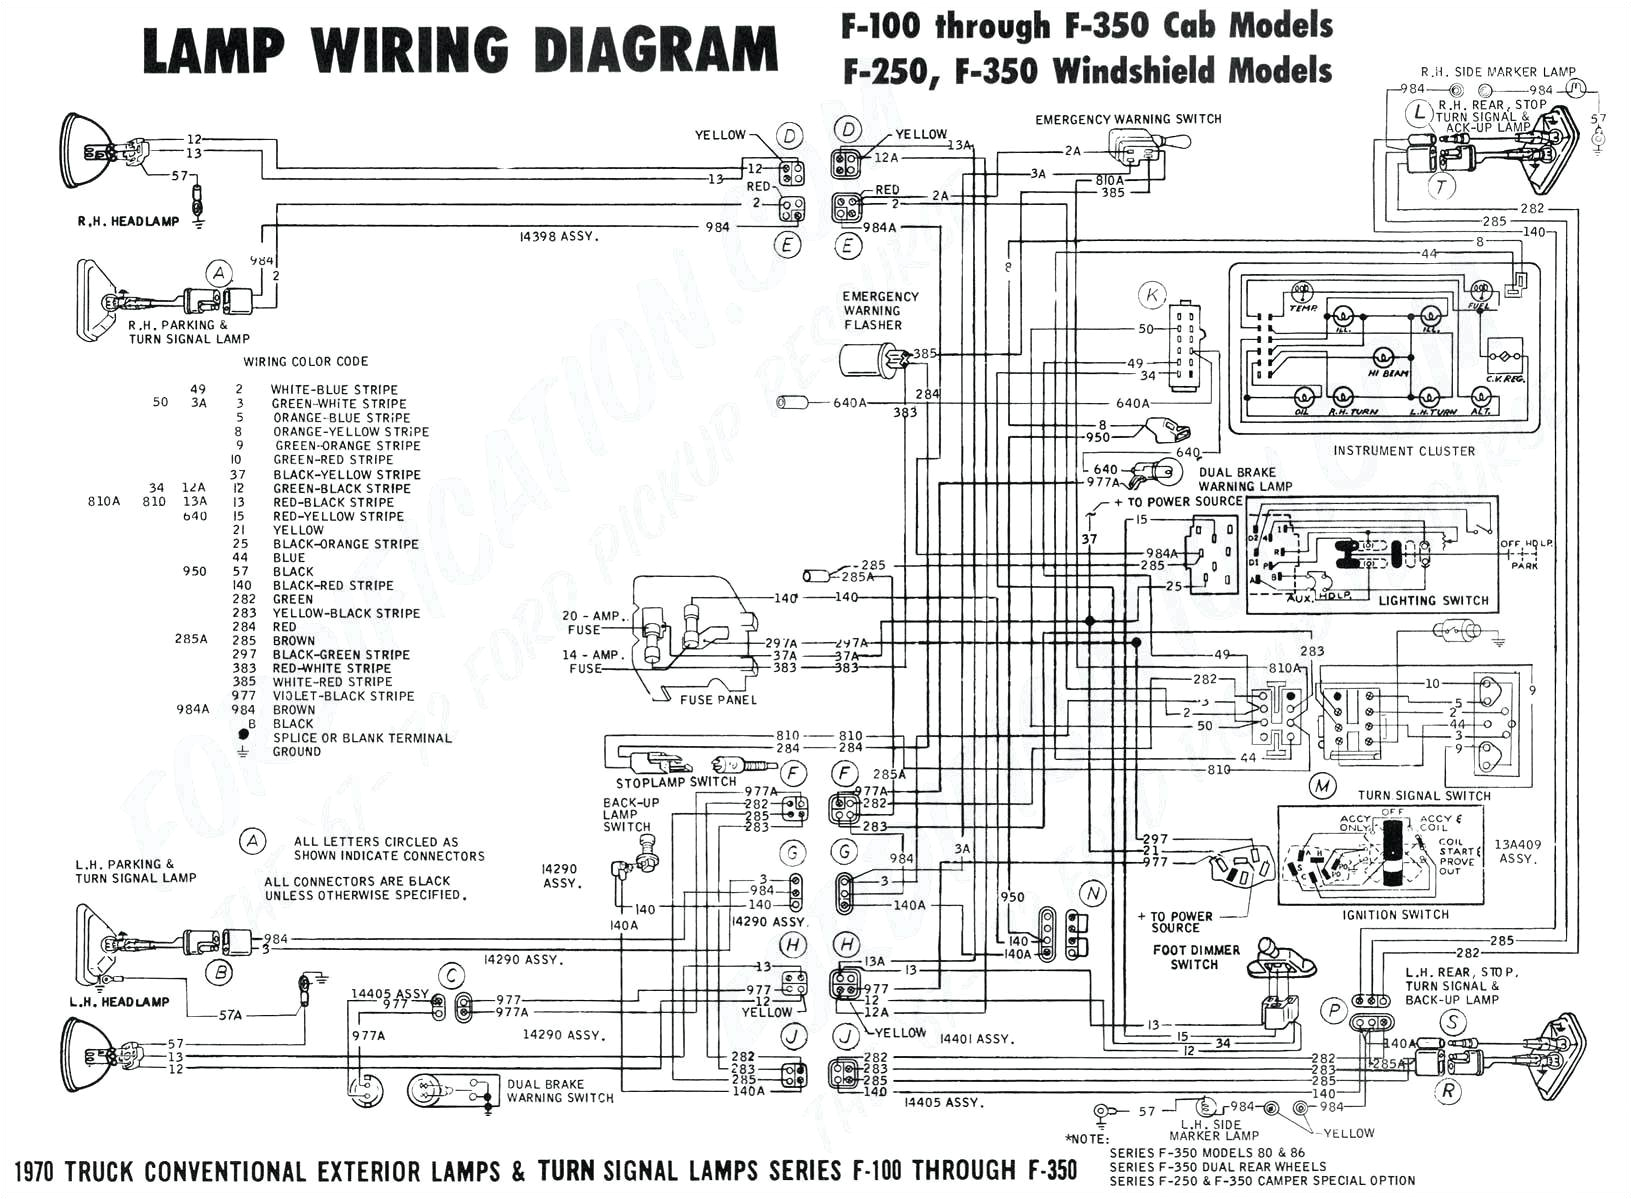 1989 dodge wiring harness diagram wiring diagram structure dodge ram 1500 wiring diagram single board controller